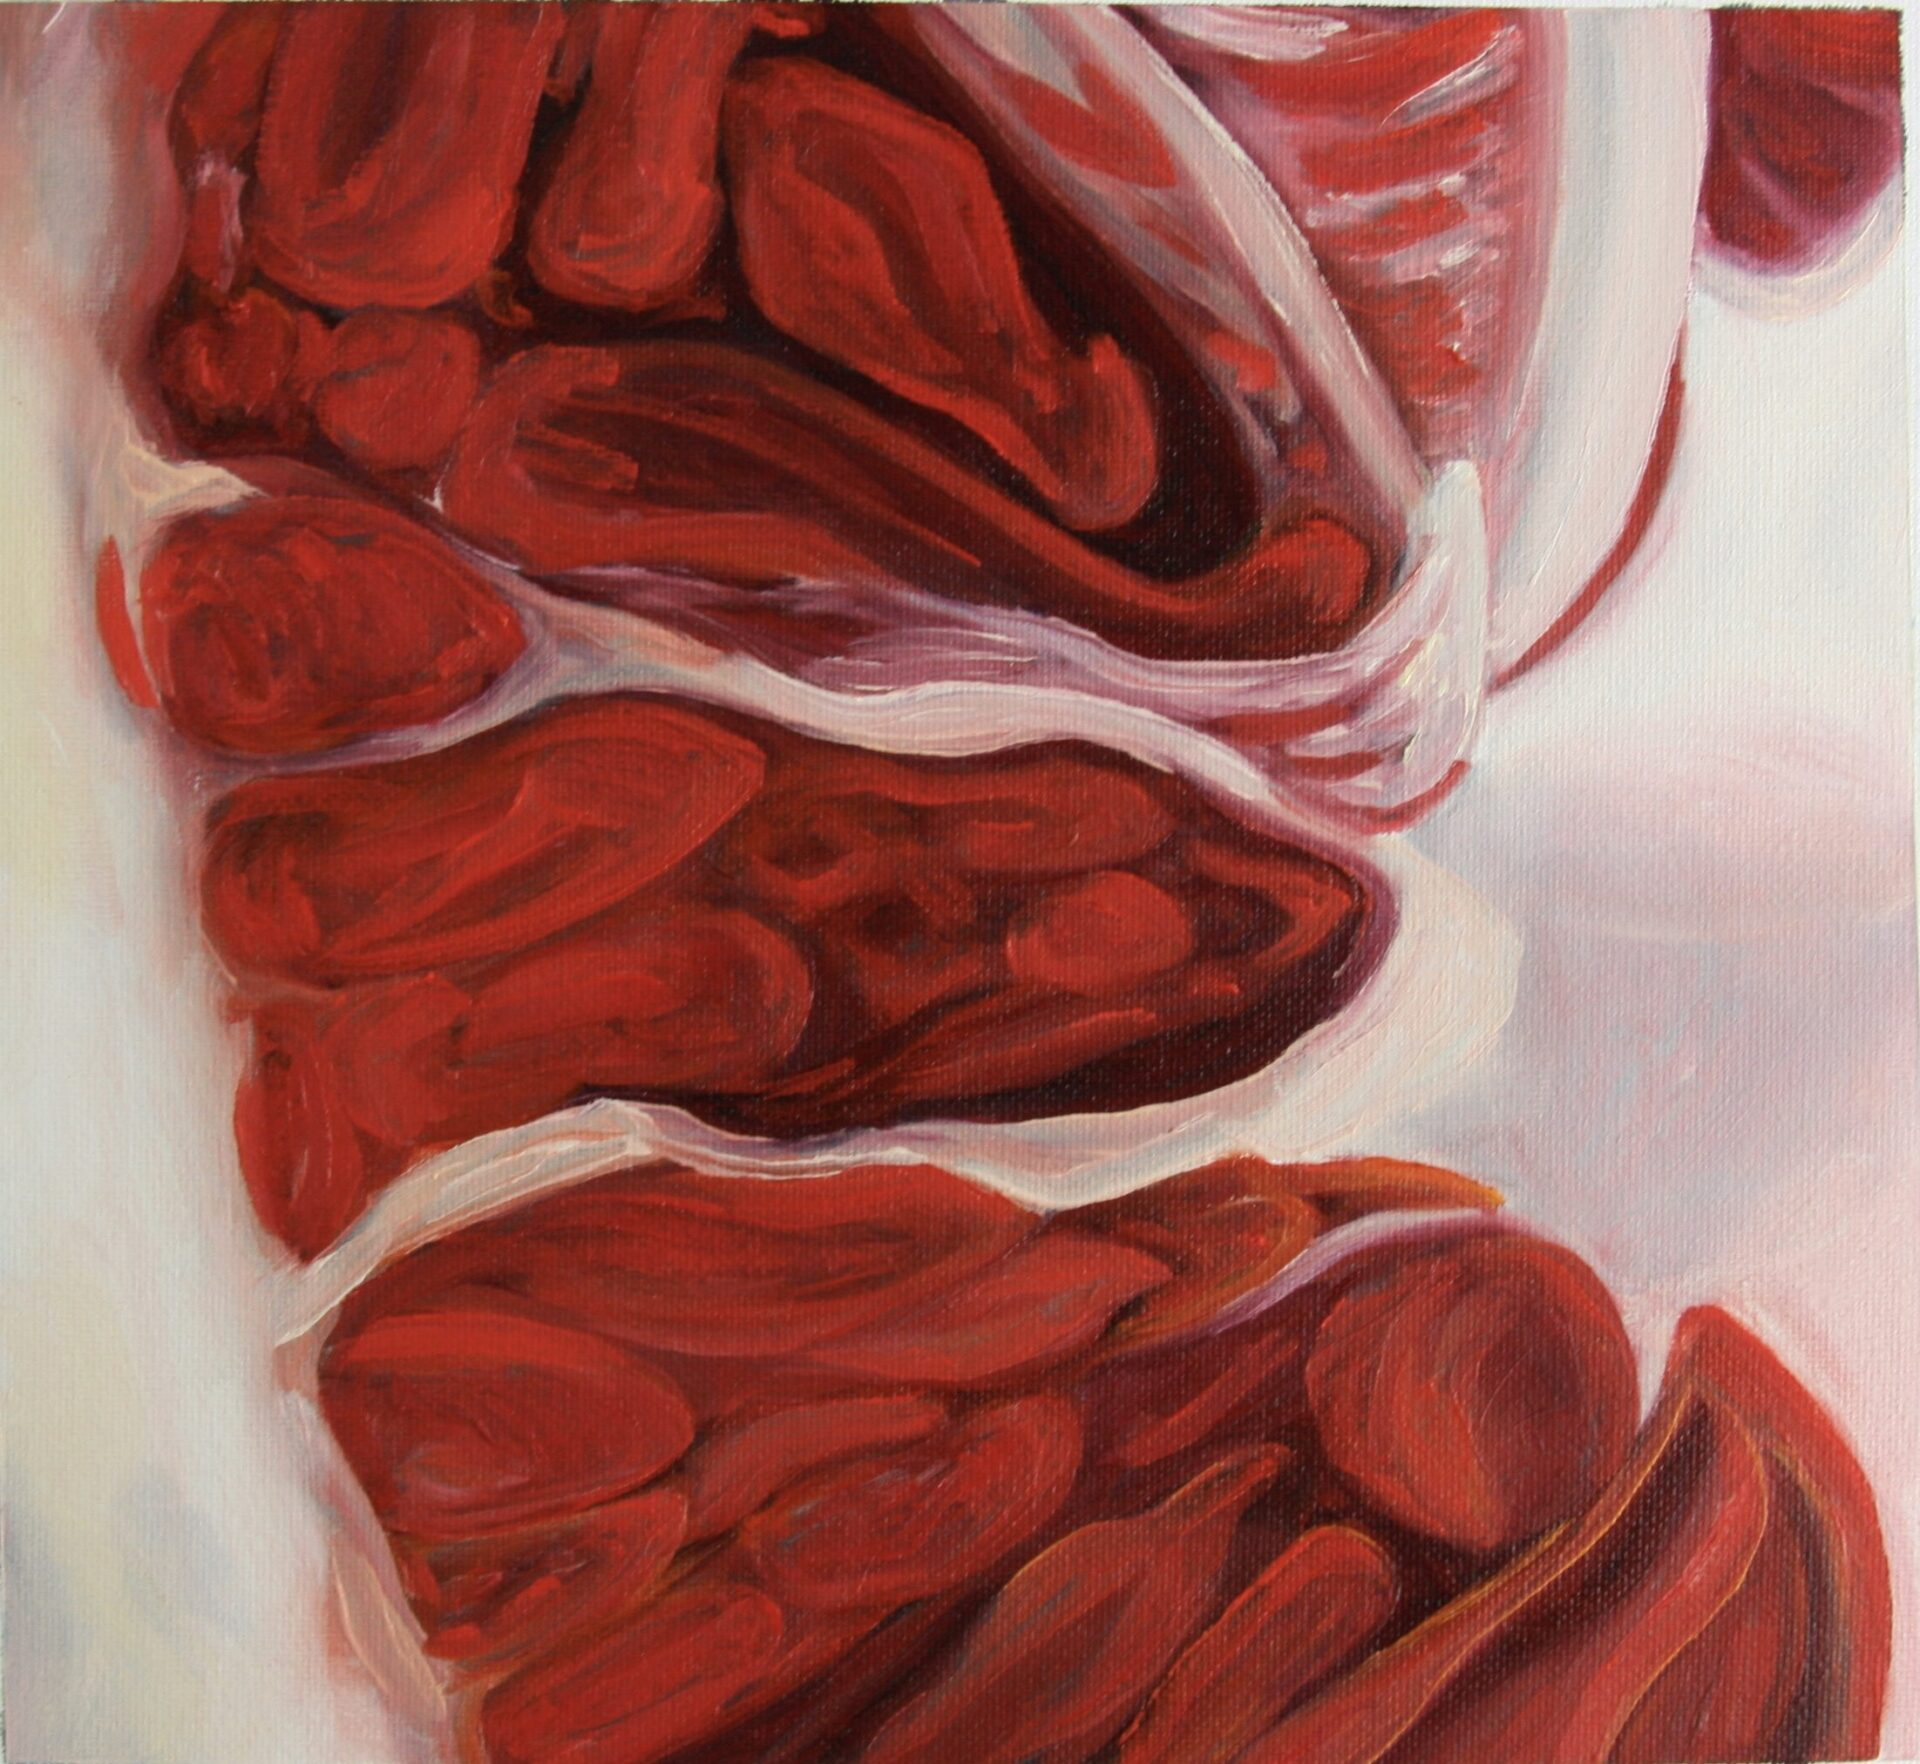 "Angela Faustina, Blood Orange study, 2015. Oil on unstretched canvas, 12"" by 12""."